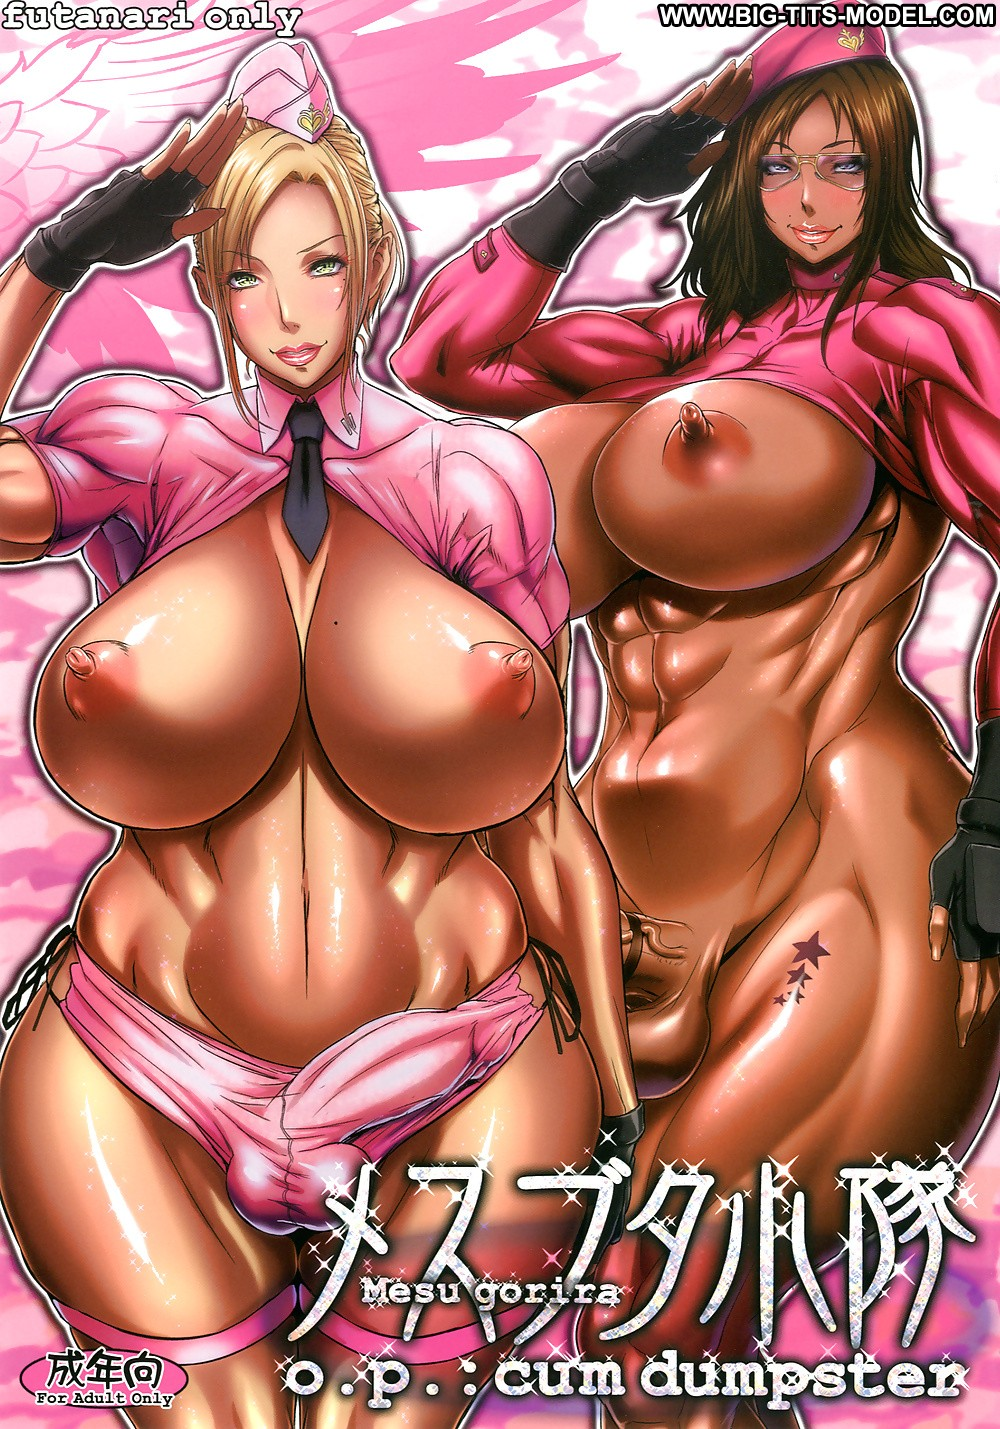 Sabryna Private Pics Big Tits Big Boobs Shemale Cartoon-3137